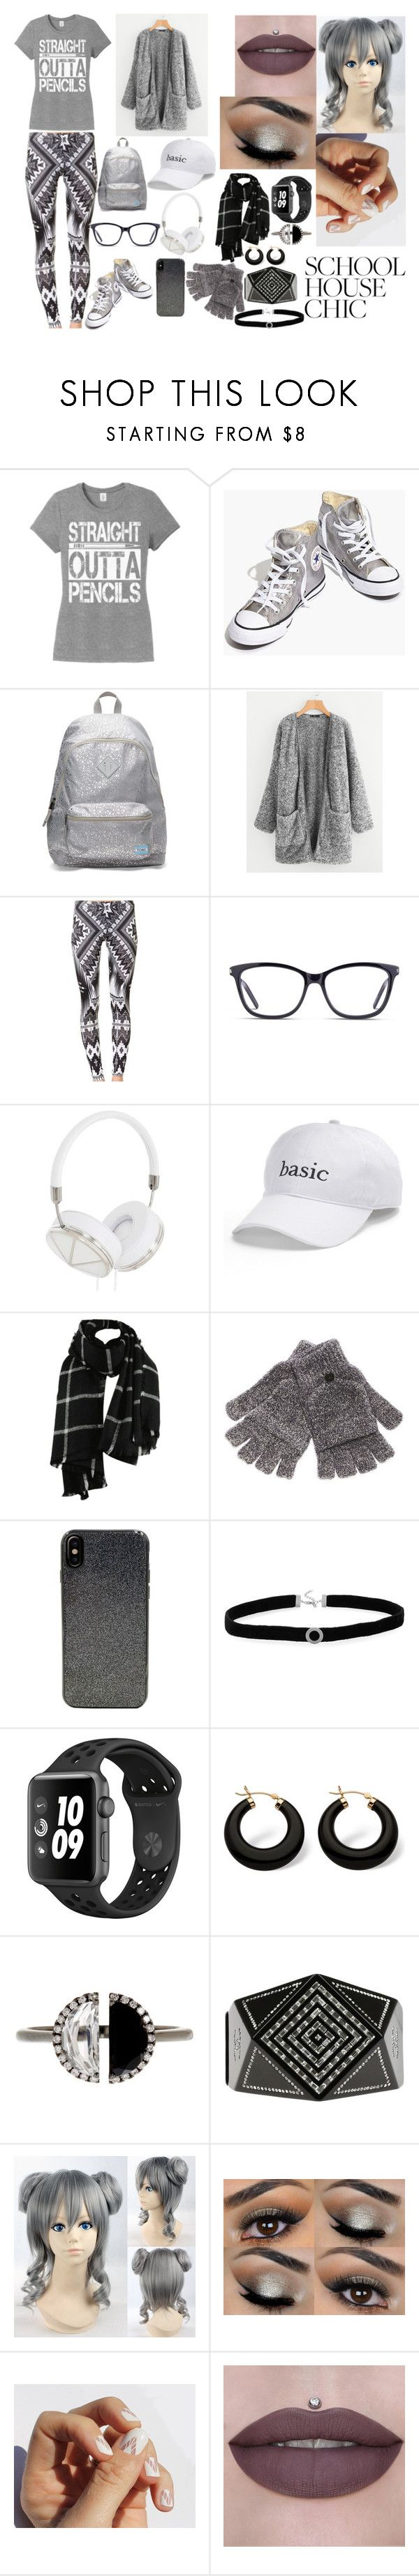 """School Fashion"" by dominique-summerall ❤ liked on Polyvore featuring Madewell, TOMS, GlassesUSA, Frends, SO, Steve Madden, Candywirez, BillyTheTree, Palm Beach Jewelry and Bony Levy"